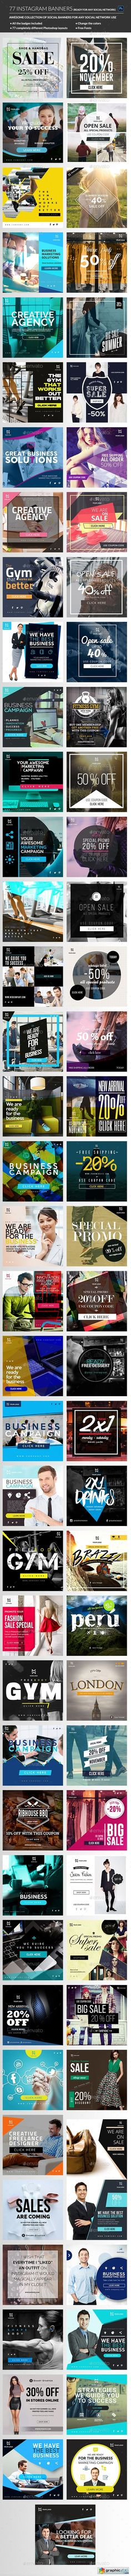 Instagram Banners Promo                                                       …